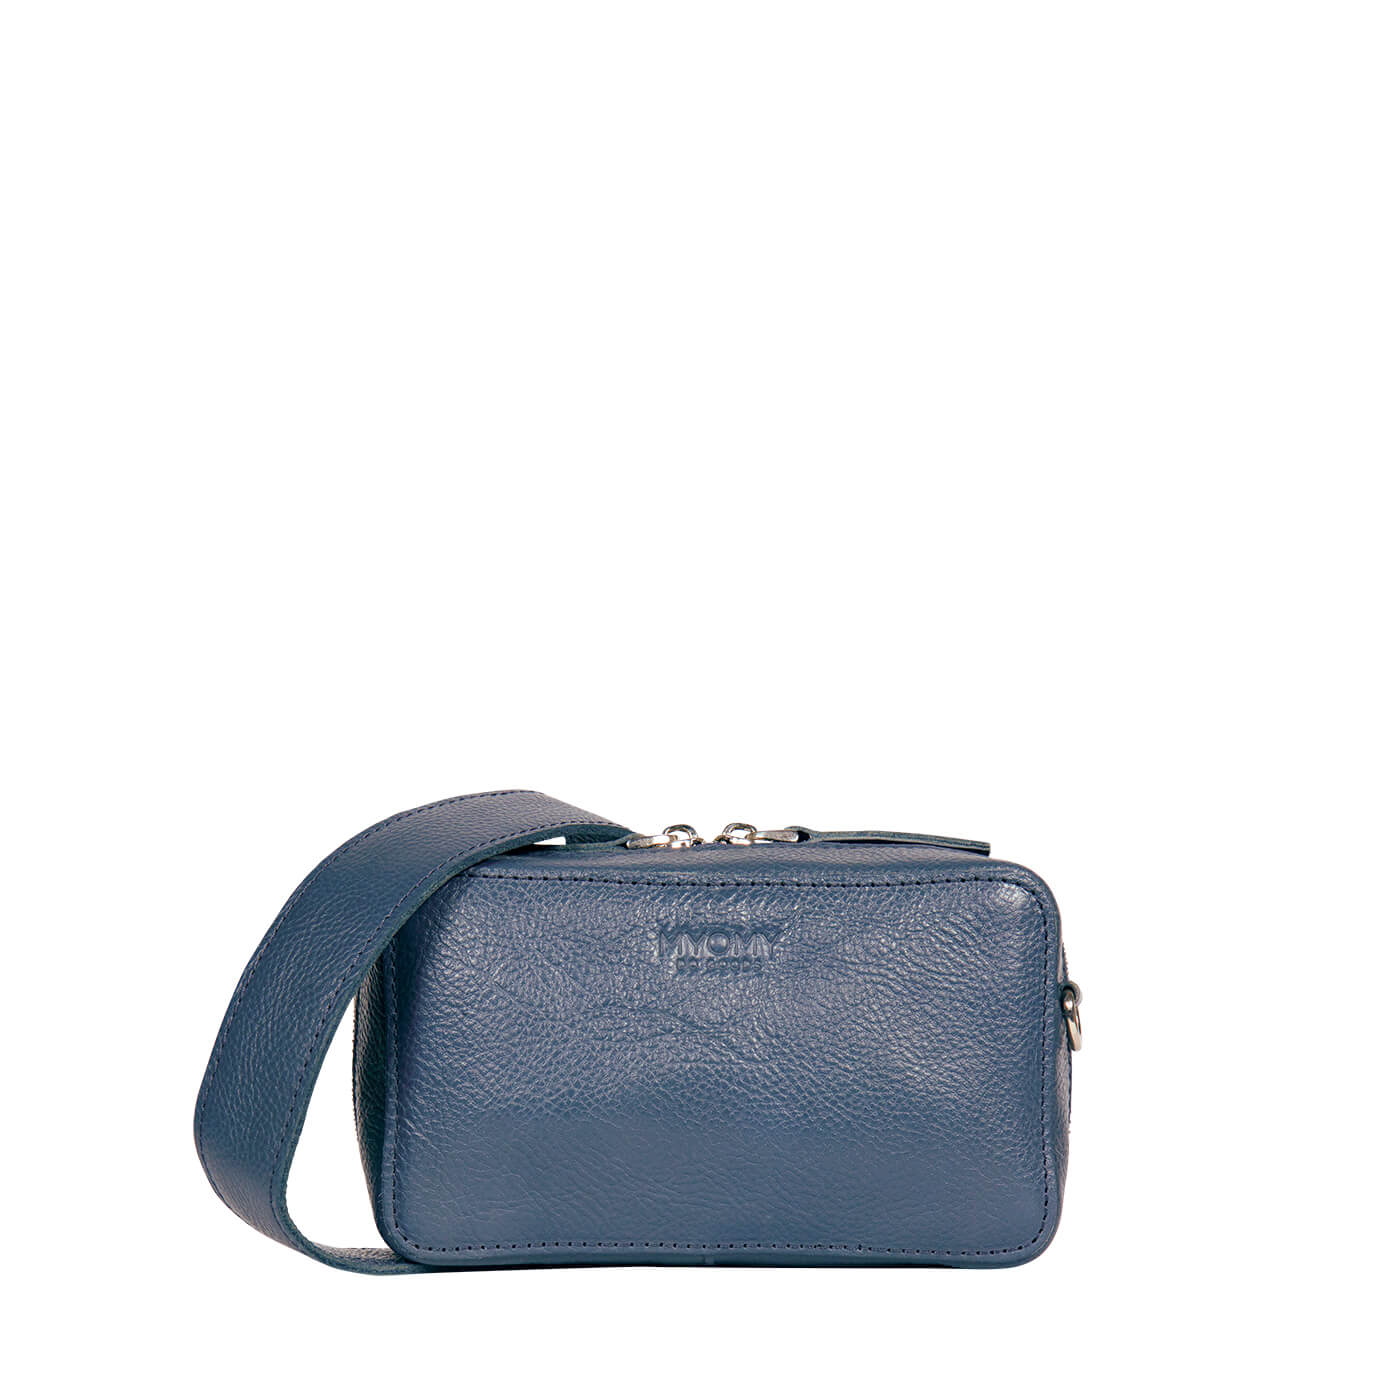 [PRE-ORDER] MY BOXY BAG Camera – seville denim blue